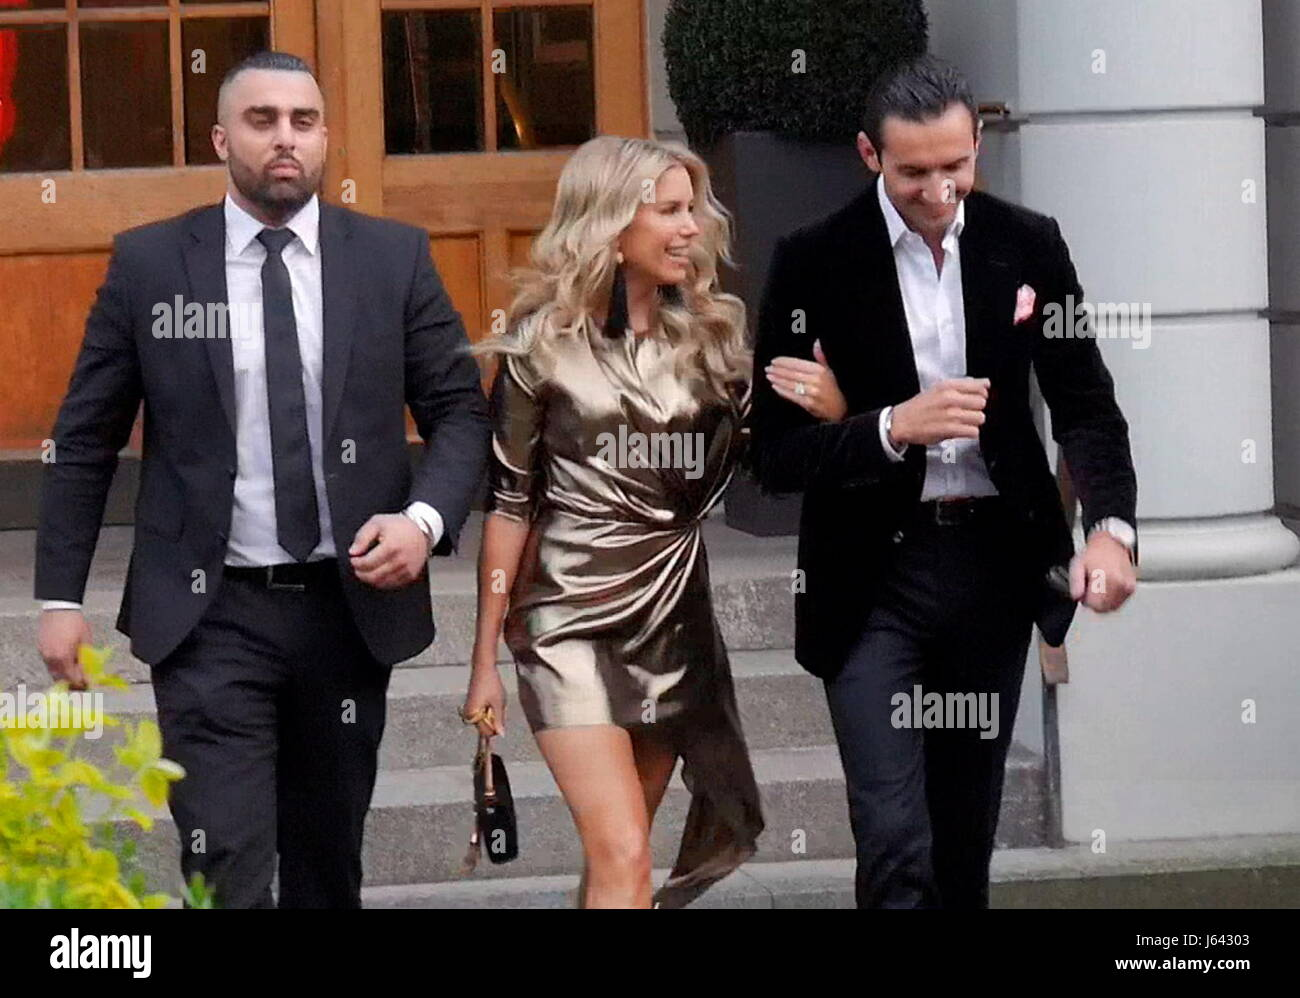 Page 3 Sylvie Meis Van Der Vaart Where High Resolution Stock Photography And Images Alamy